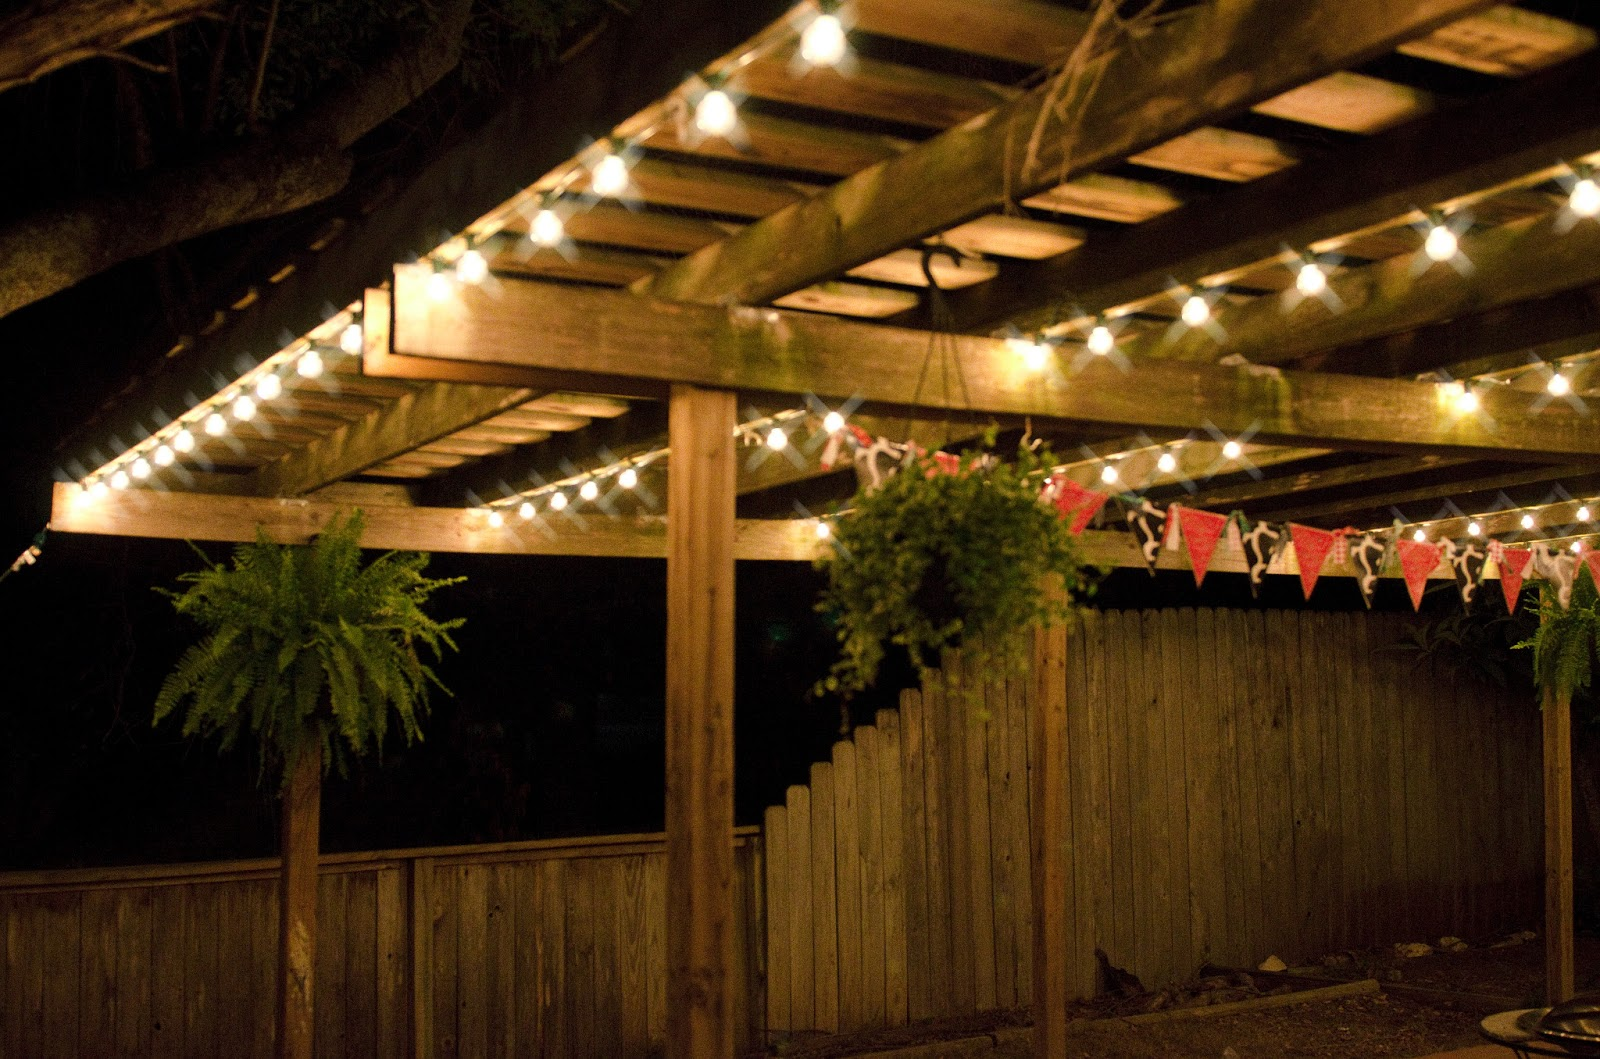 Patio wall lights 10 ideal ways to light up your home - How to use lights to decorate your patio ...